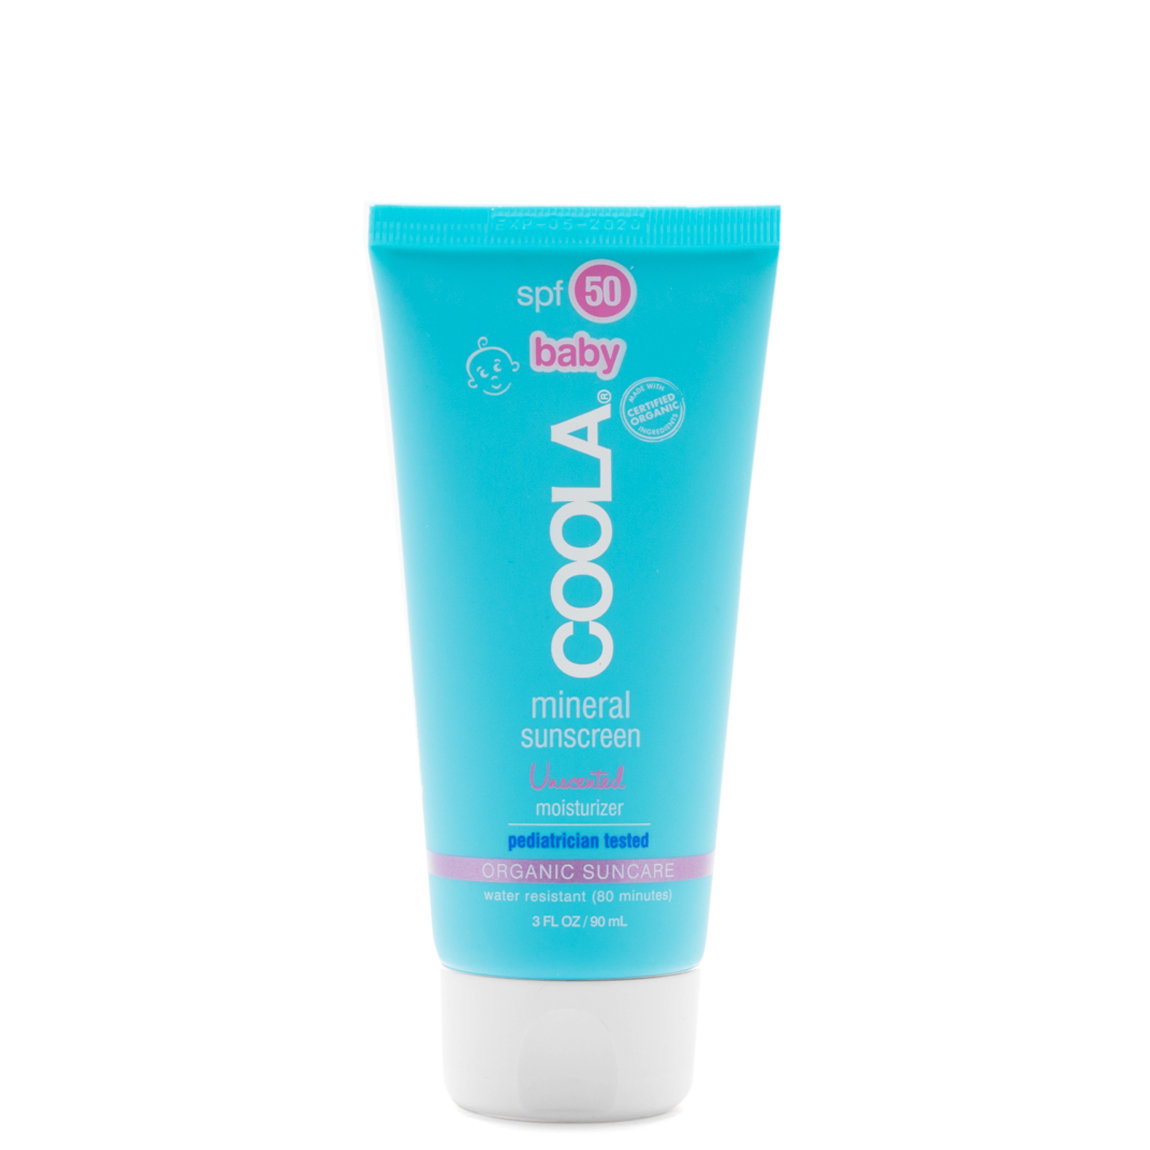 COOLA Mineral Baby Sunscreen Moisturizer SPF 50 alternative view 1 - product swatch.